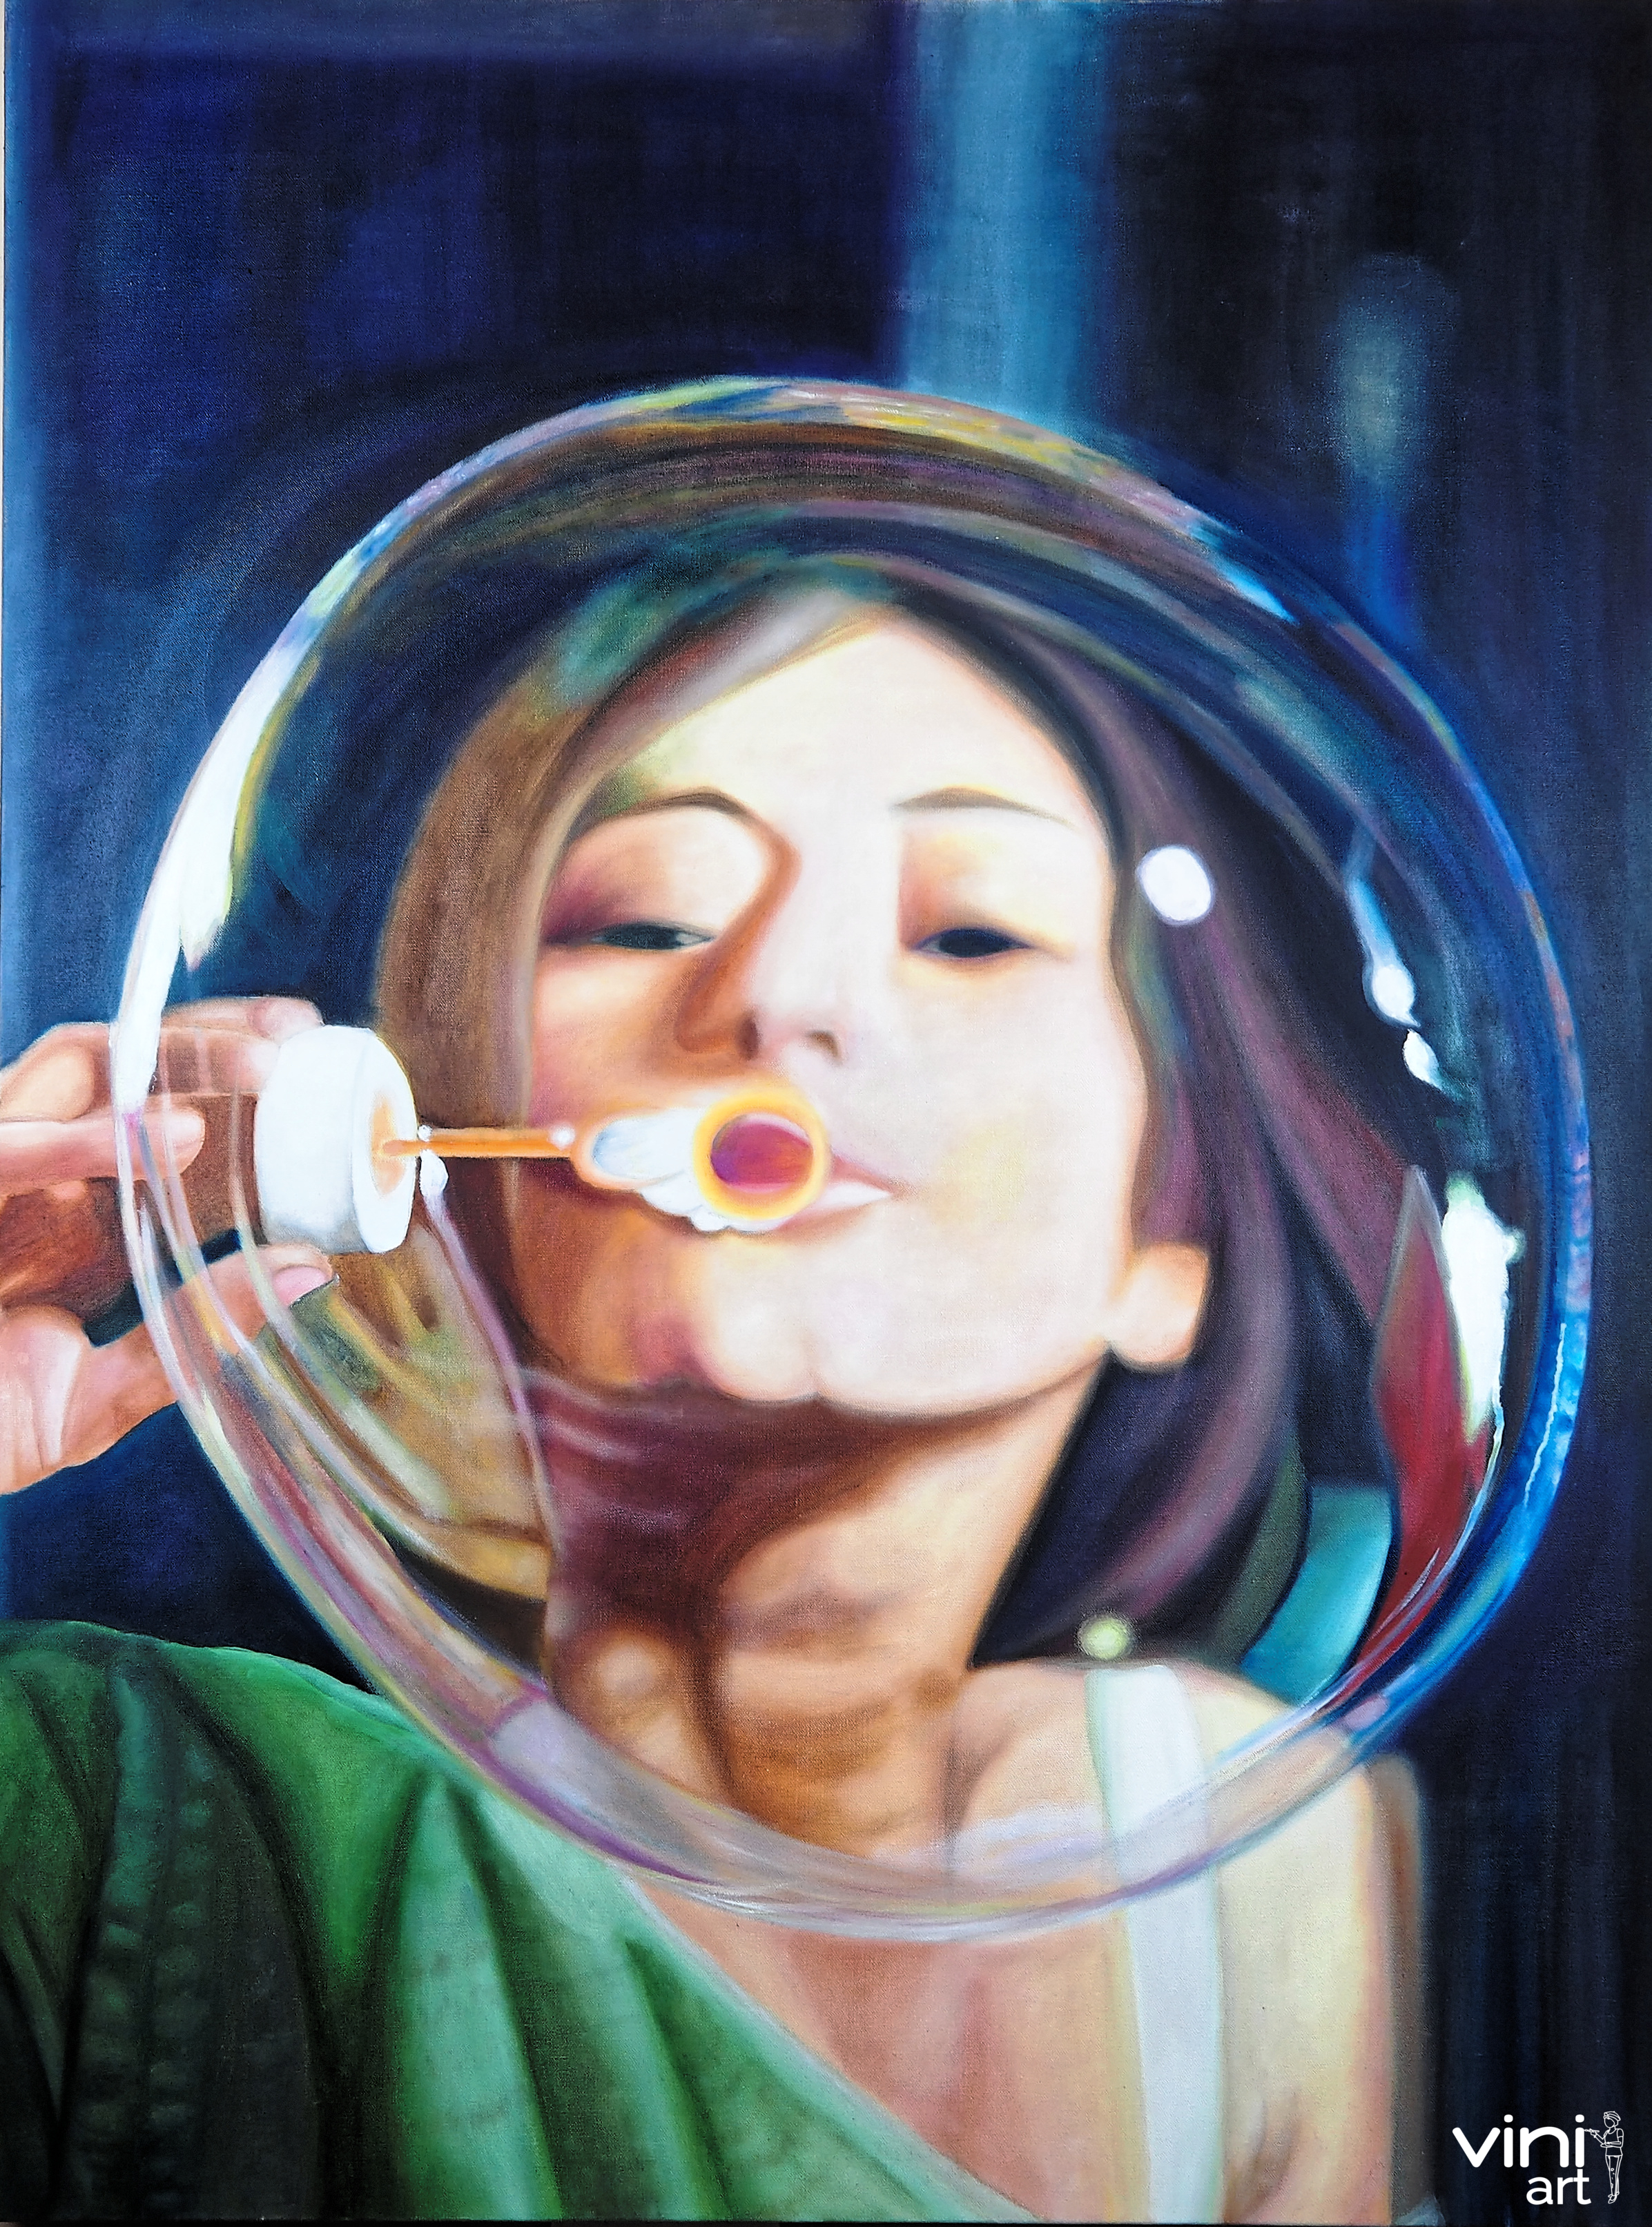 Bubble Therapy - Finally completed my latest painting Bubble Therapy on 3ft x 4ft canvas.Whenever I am stuck in a mental loop, I bring out the bubble solution and wand and blow bubbles. Bubbles remind me that energy is being created and destroyed and re-created constantly. It's hard to hang on to fixed beliefs when bubbles are shimmering, sparkling and popping in glorious rainbow colors all around you.Thoughts, beliefs, mind loops are just patterns of energy. So the next time you feel stuck in a familiar groove, create and destroy and transmute by blowing bubbles. The energy will shift. Old patterns will dissolve. New ones will emerge, to dissolve in turn…Credits: Mario Zamora for the awesome reference pictureHiro Boga for her inspirational blog including looking at bubbles as therapy.